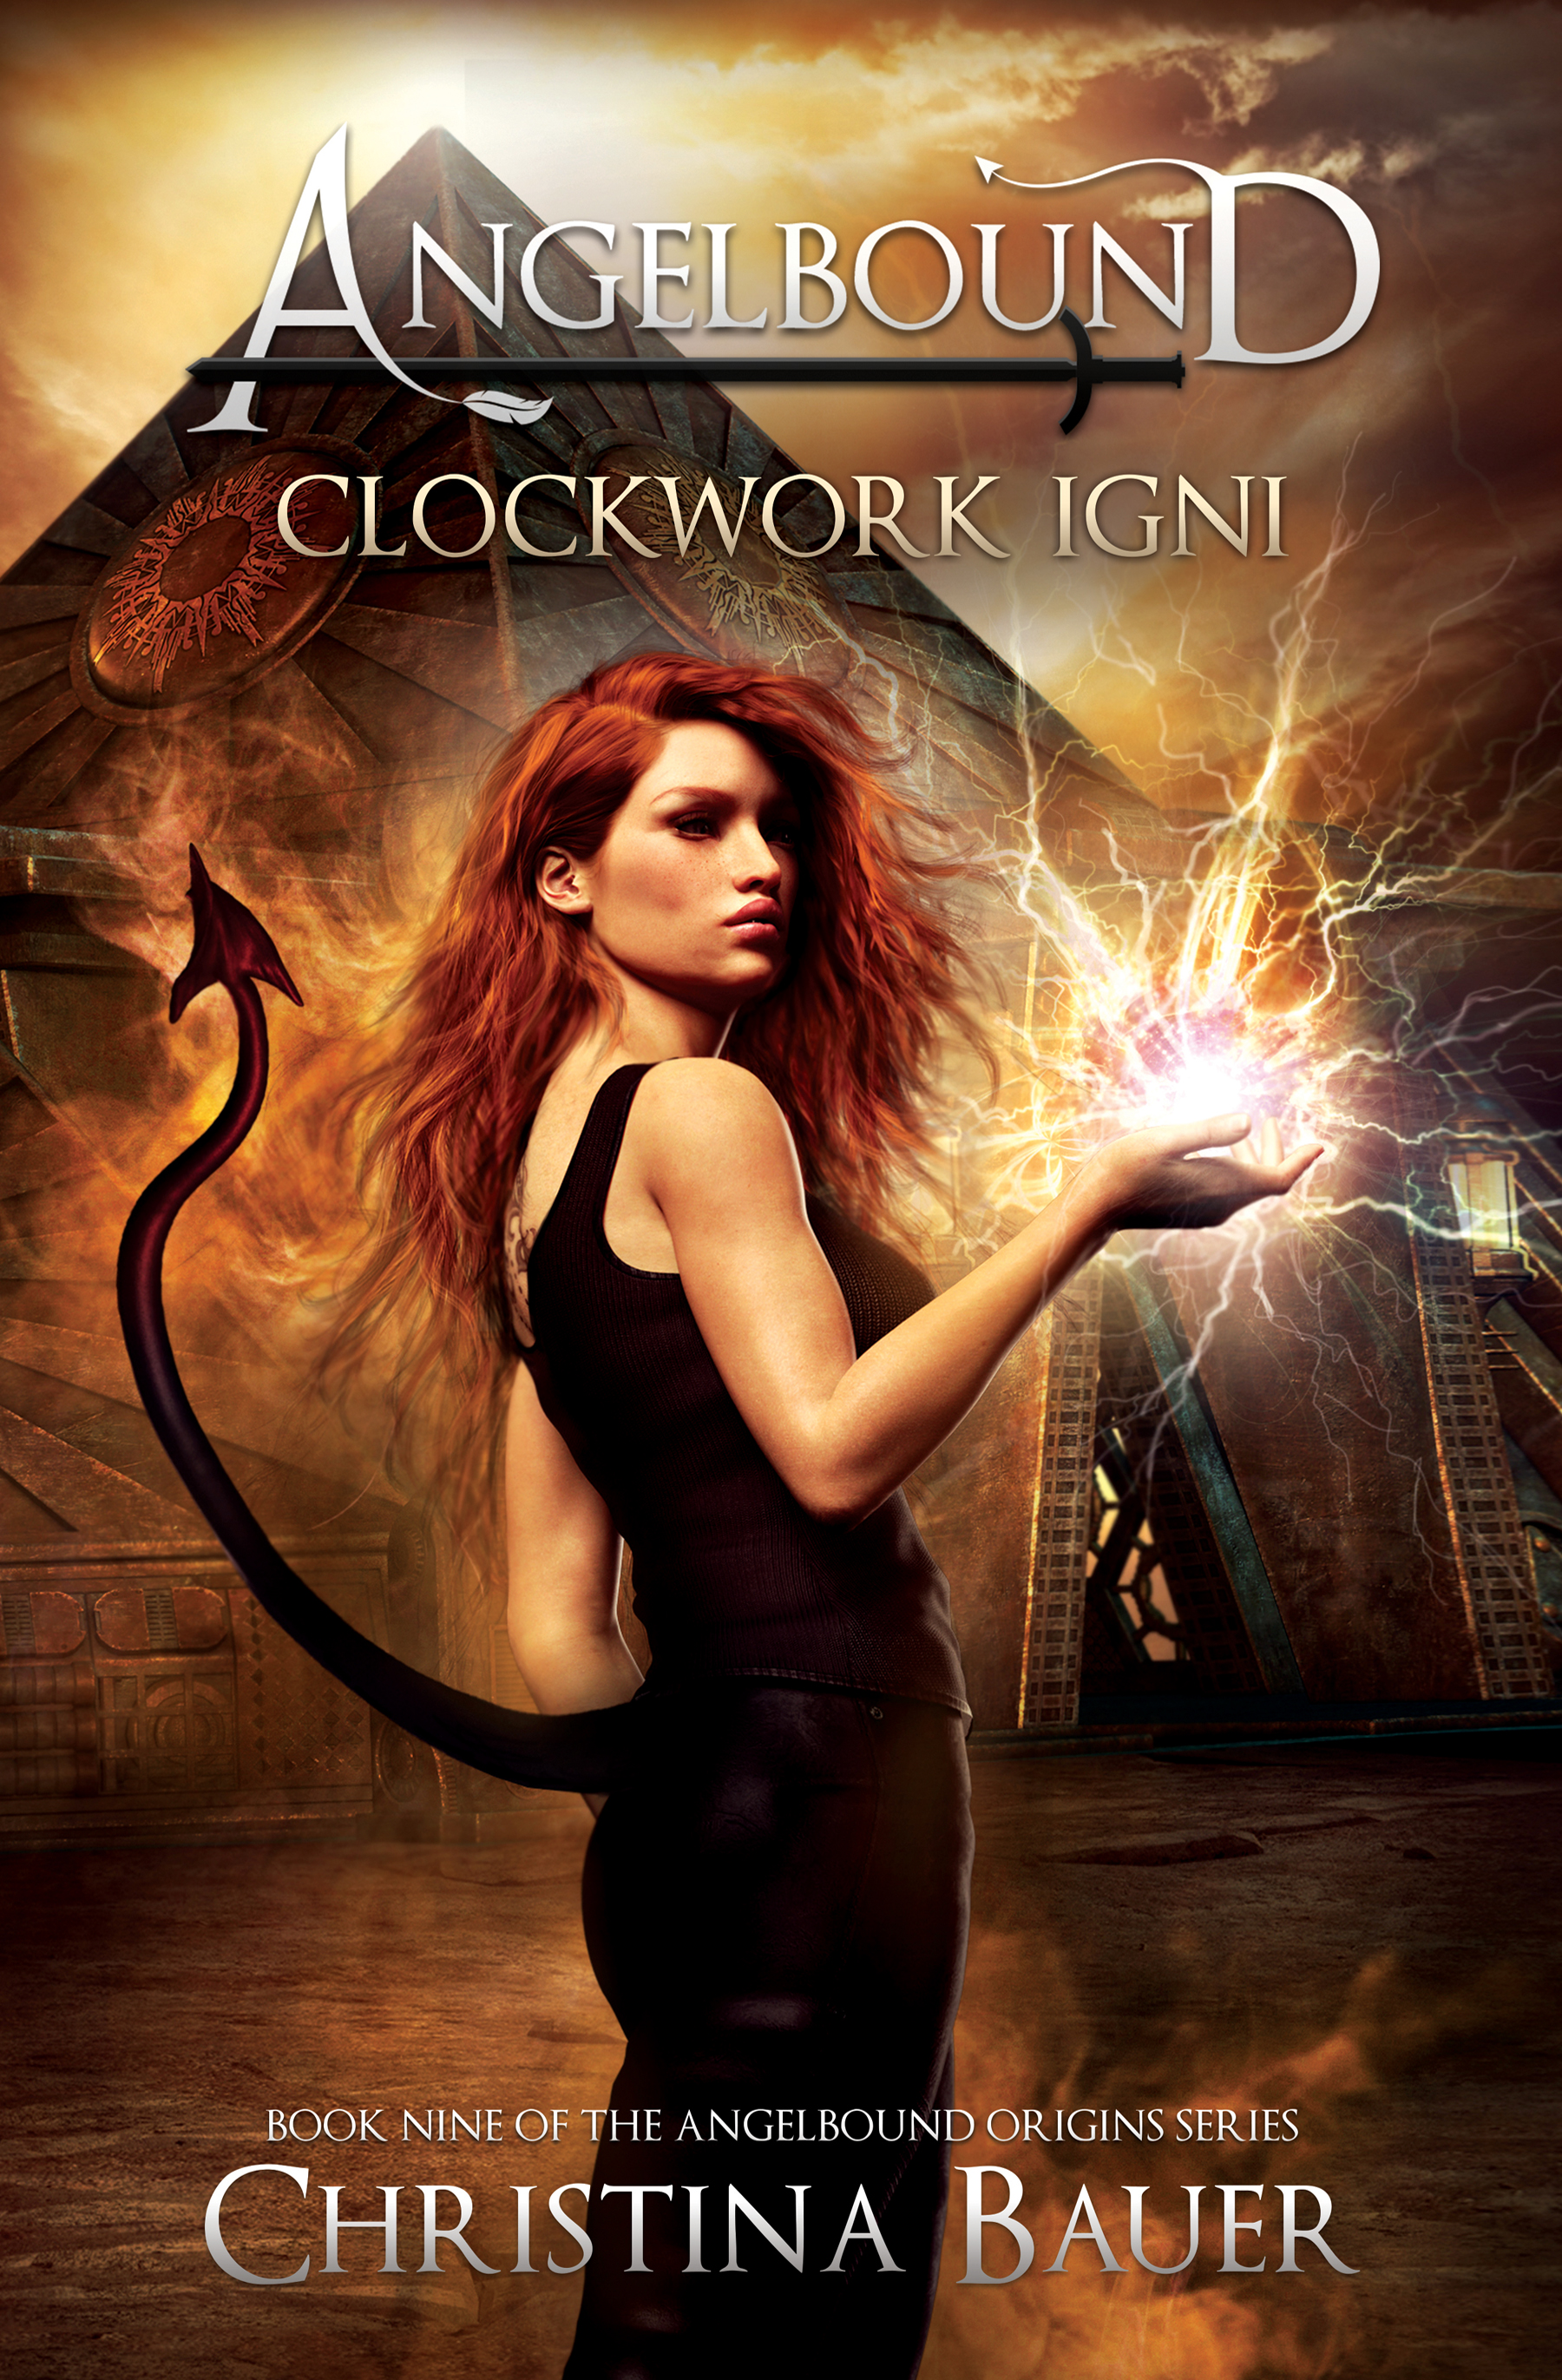 Clockwork Igni (Angelbound Origins 9)